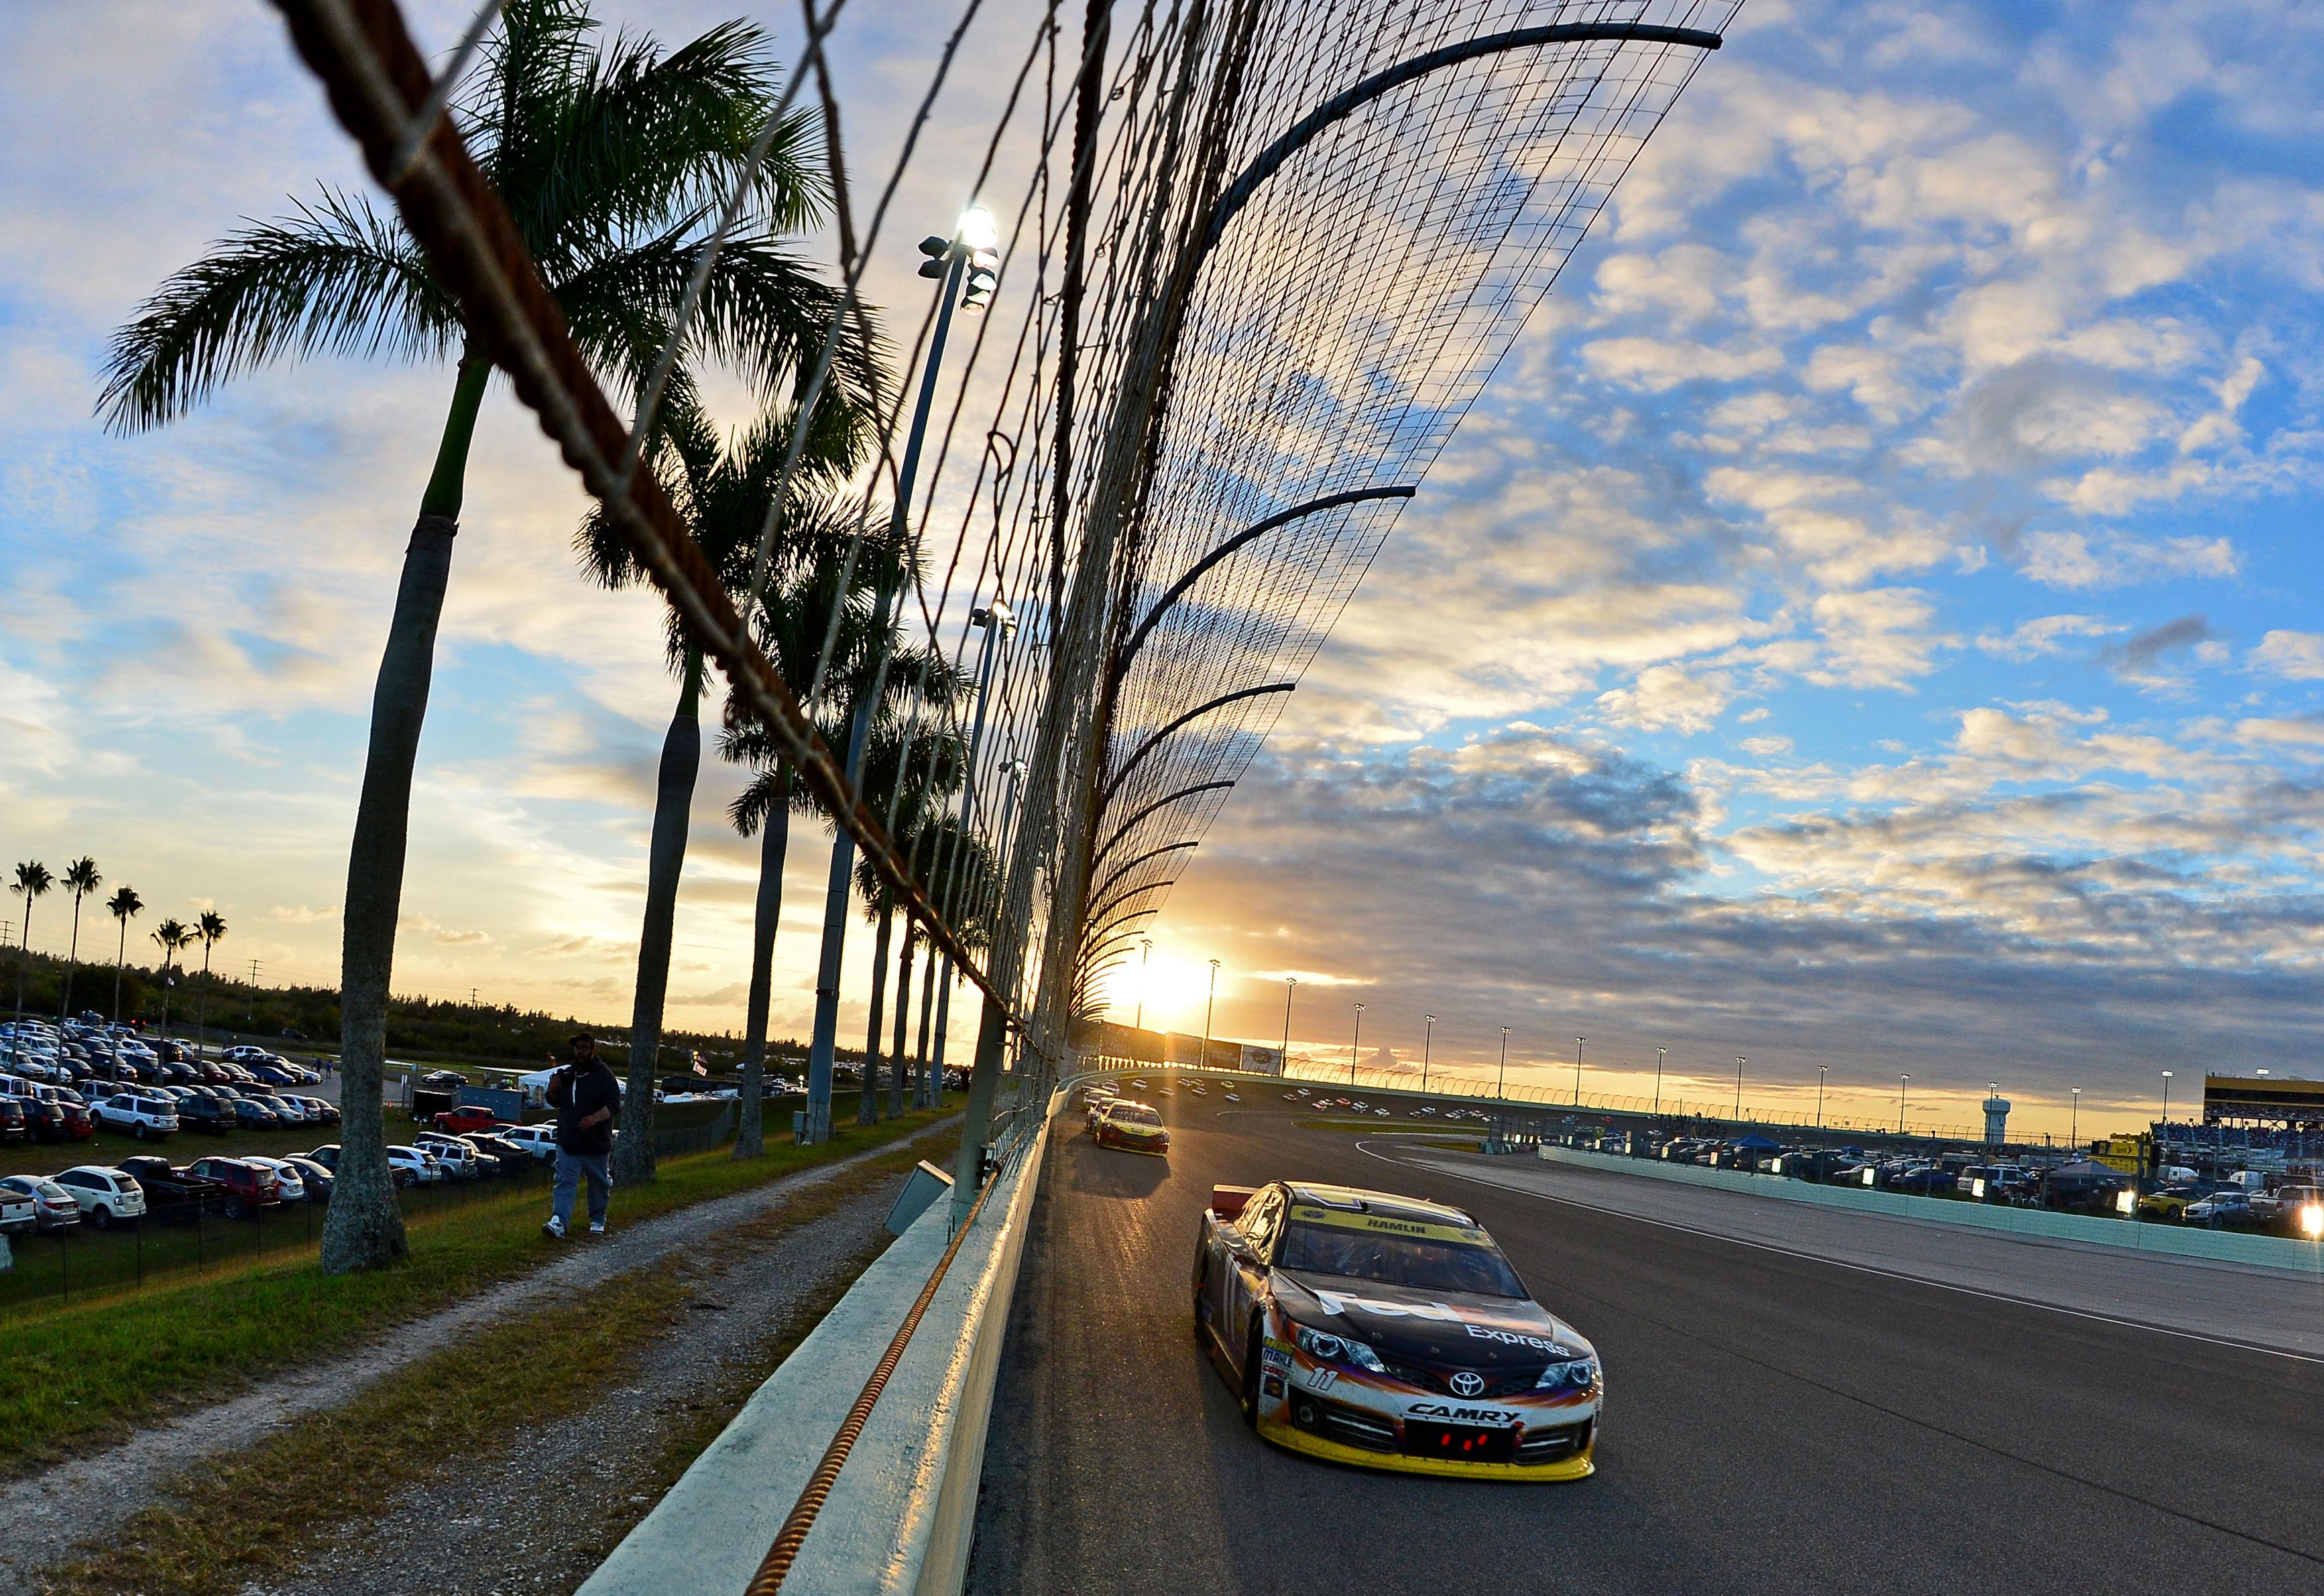 Nov 16, 2014; Homestead, FL, USA; NASCAR Sprint Cup Series driver Denny Hamlin during the Ford EcoBoost 400 at Homestead-Miami Speedway. (Andrew Weber-USA TODAY Sports)